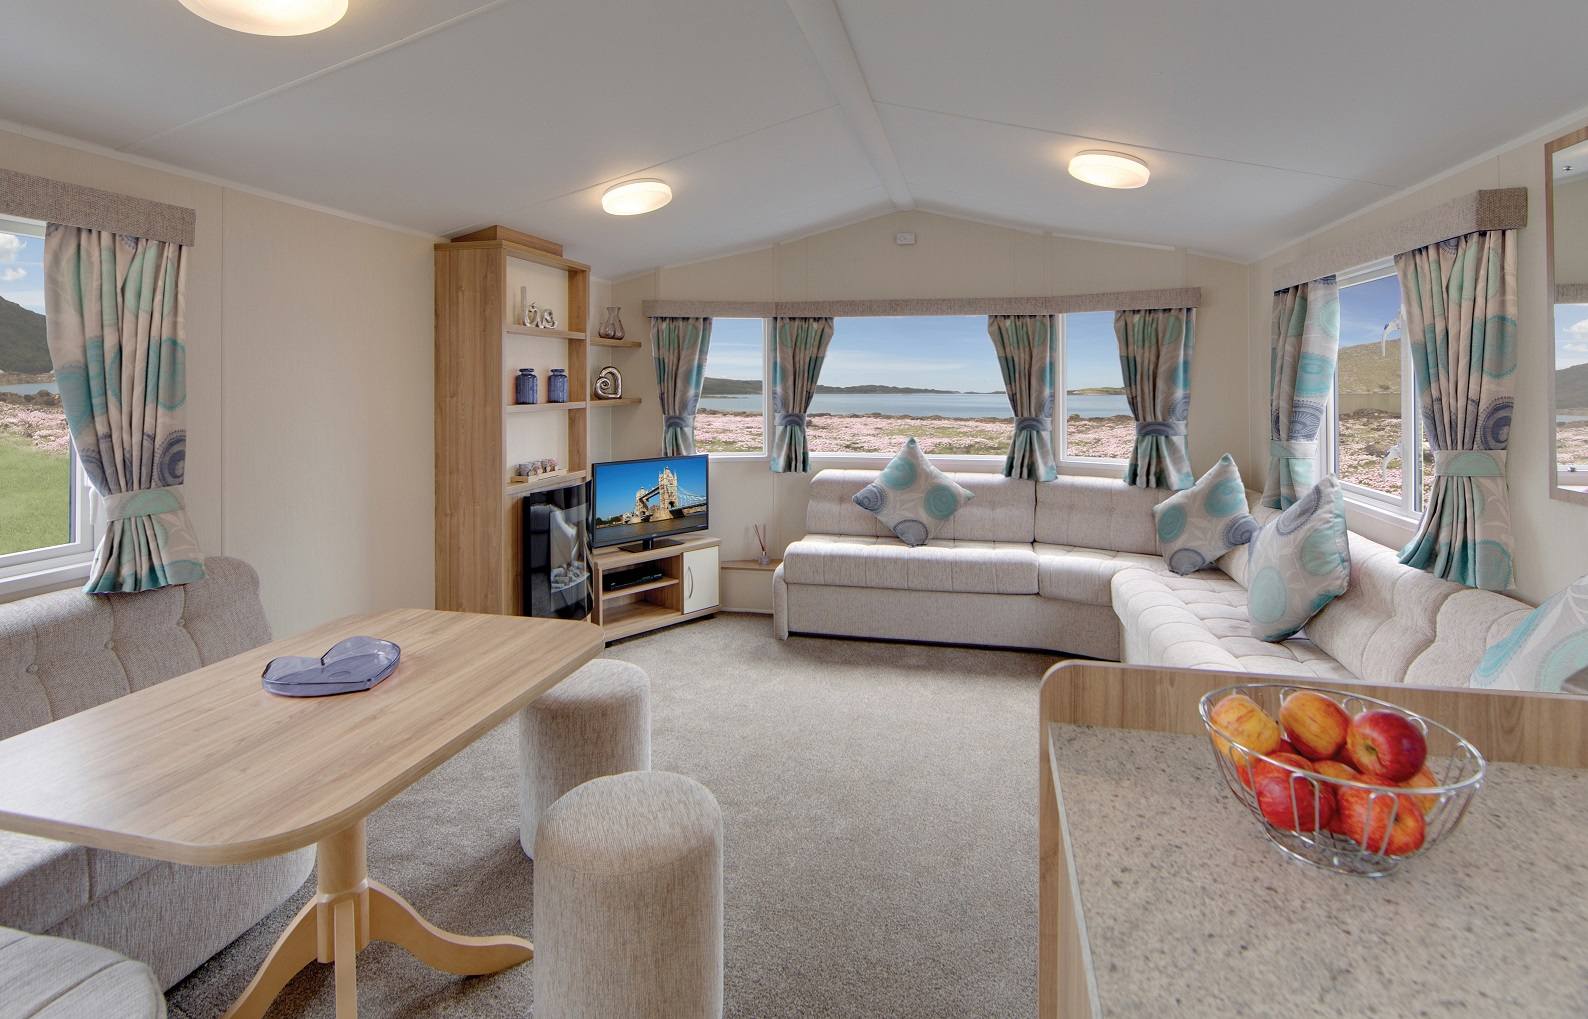 Willerby Rio Gold: New Static Caravans and Holiday Homes for Sale, Langley Moor, Durham Large Image 1